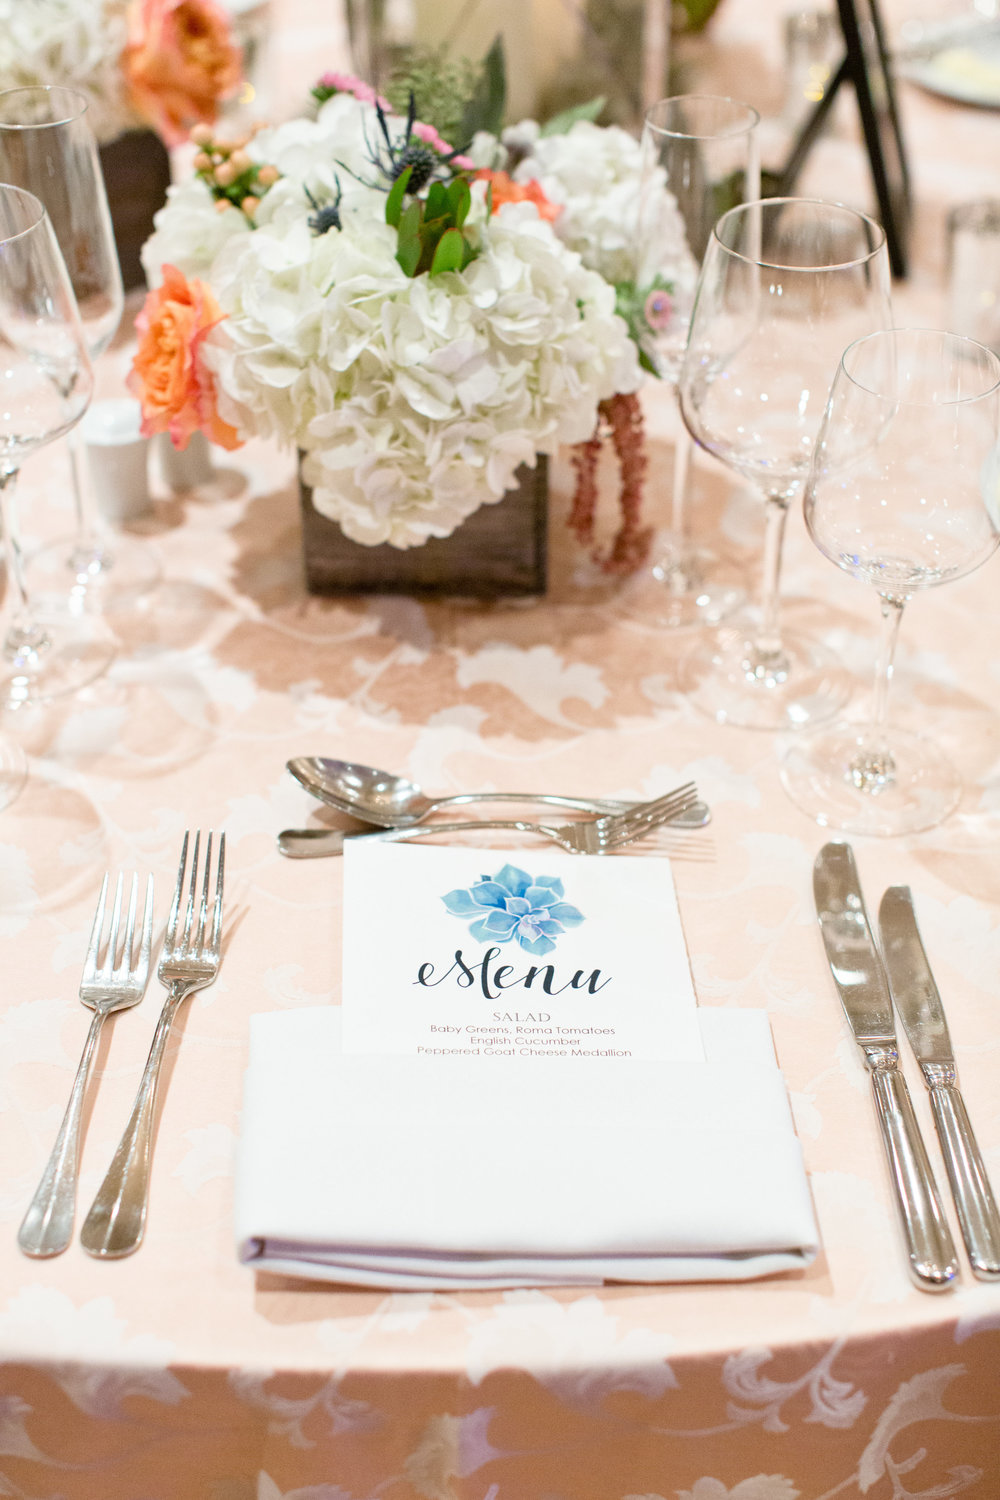 Phoenix-Scottsdale-Arizona-Wedding-Planner-Wedding-Venue-Destination-Wedding-Planner, Omni Montelucia weddings, sunset weddings, Arizona Sunset weddings, wedding details, succulent bouquets, pink orange green blue bouquets, wedding reception menu